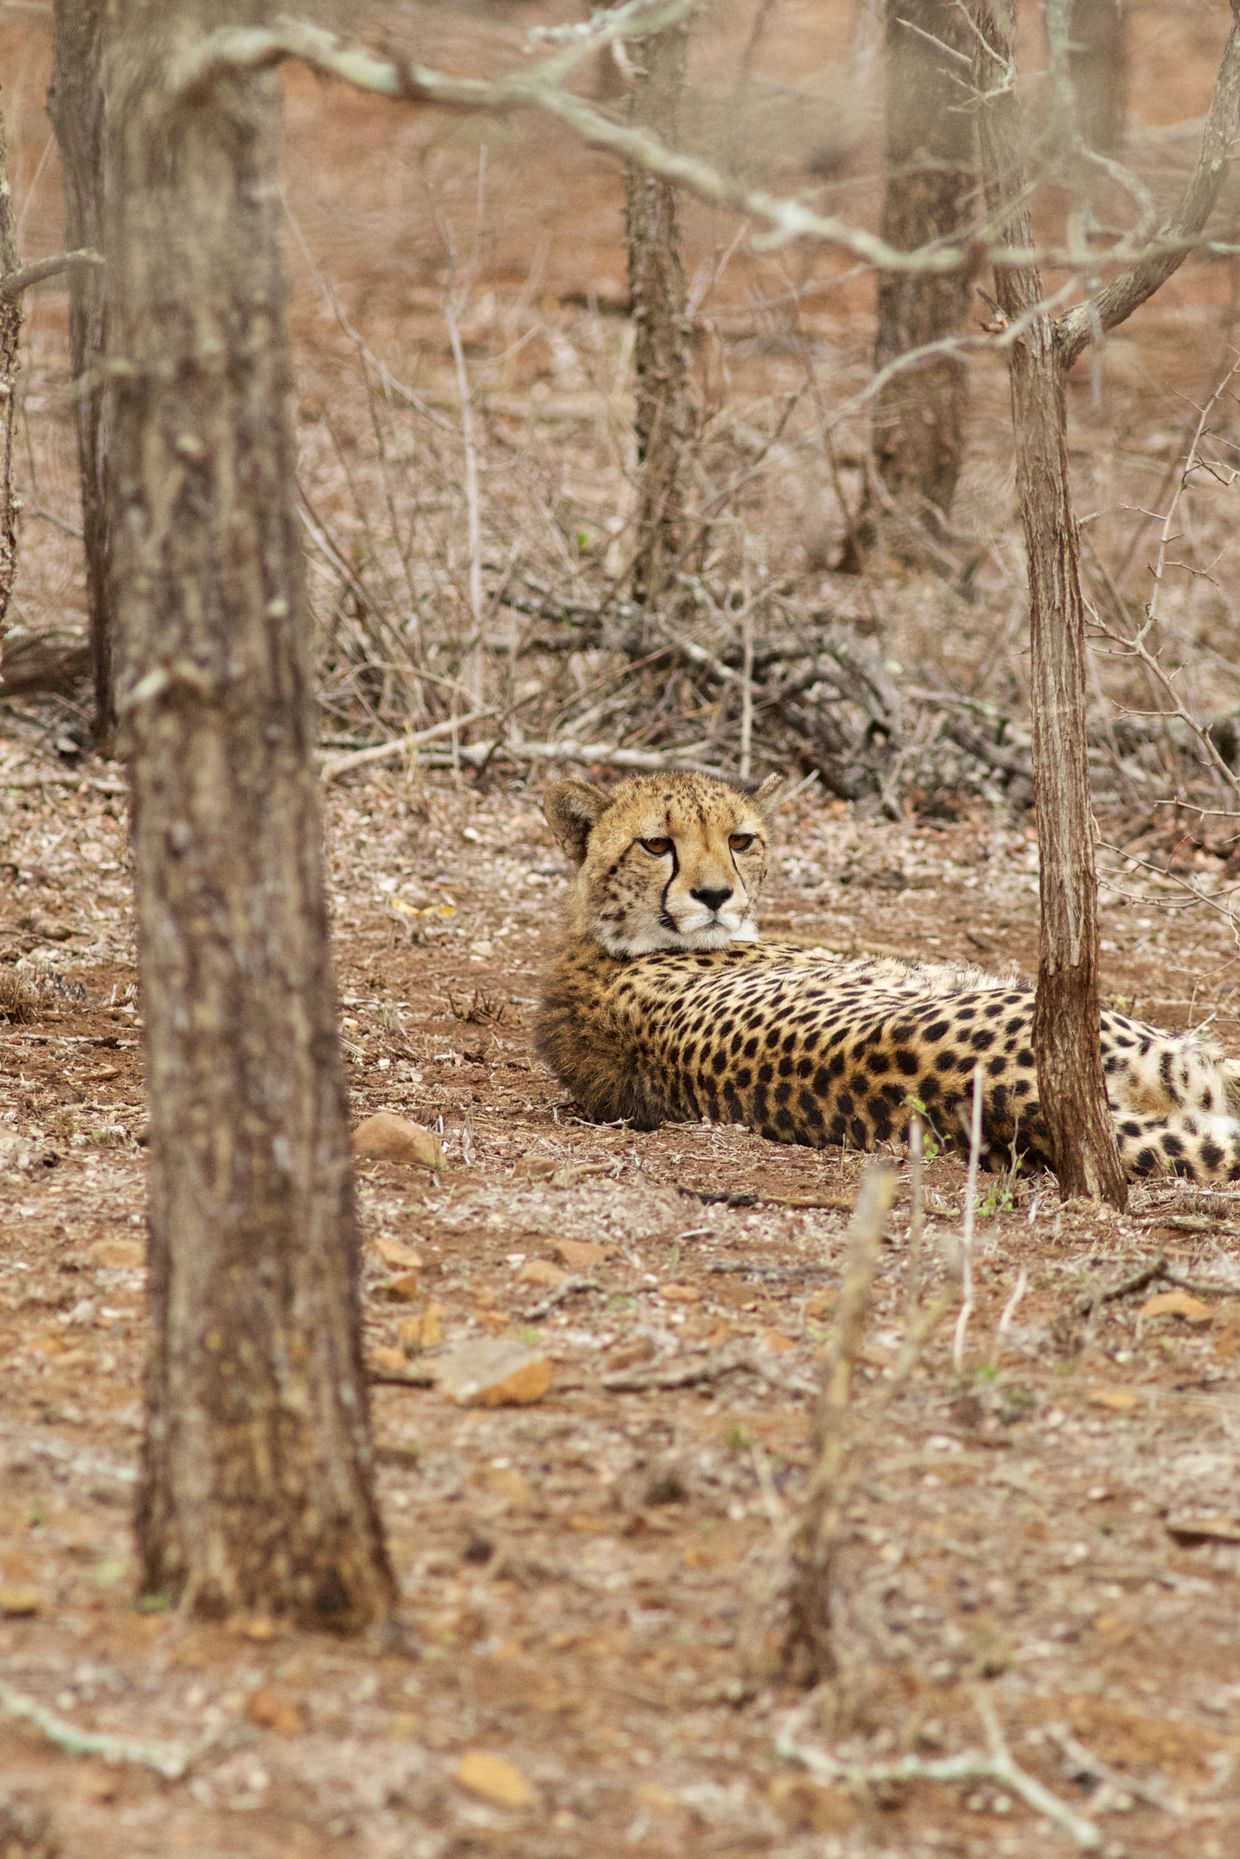 One of the two cheetah lying between the trees